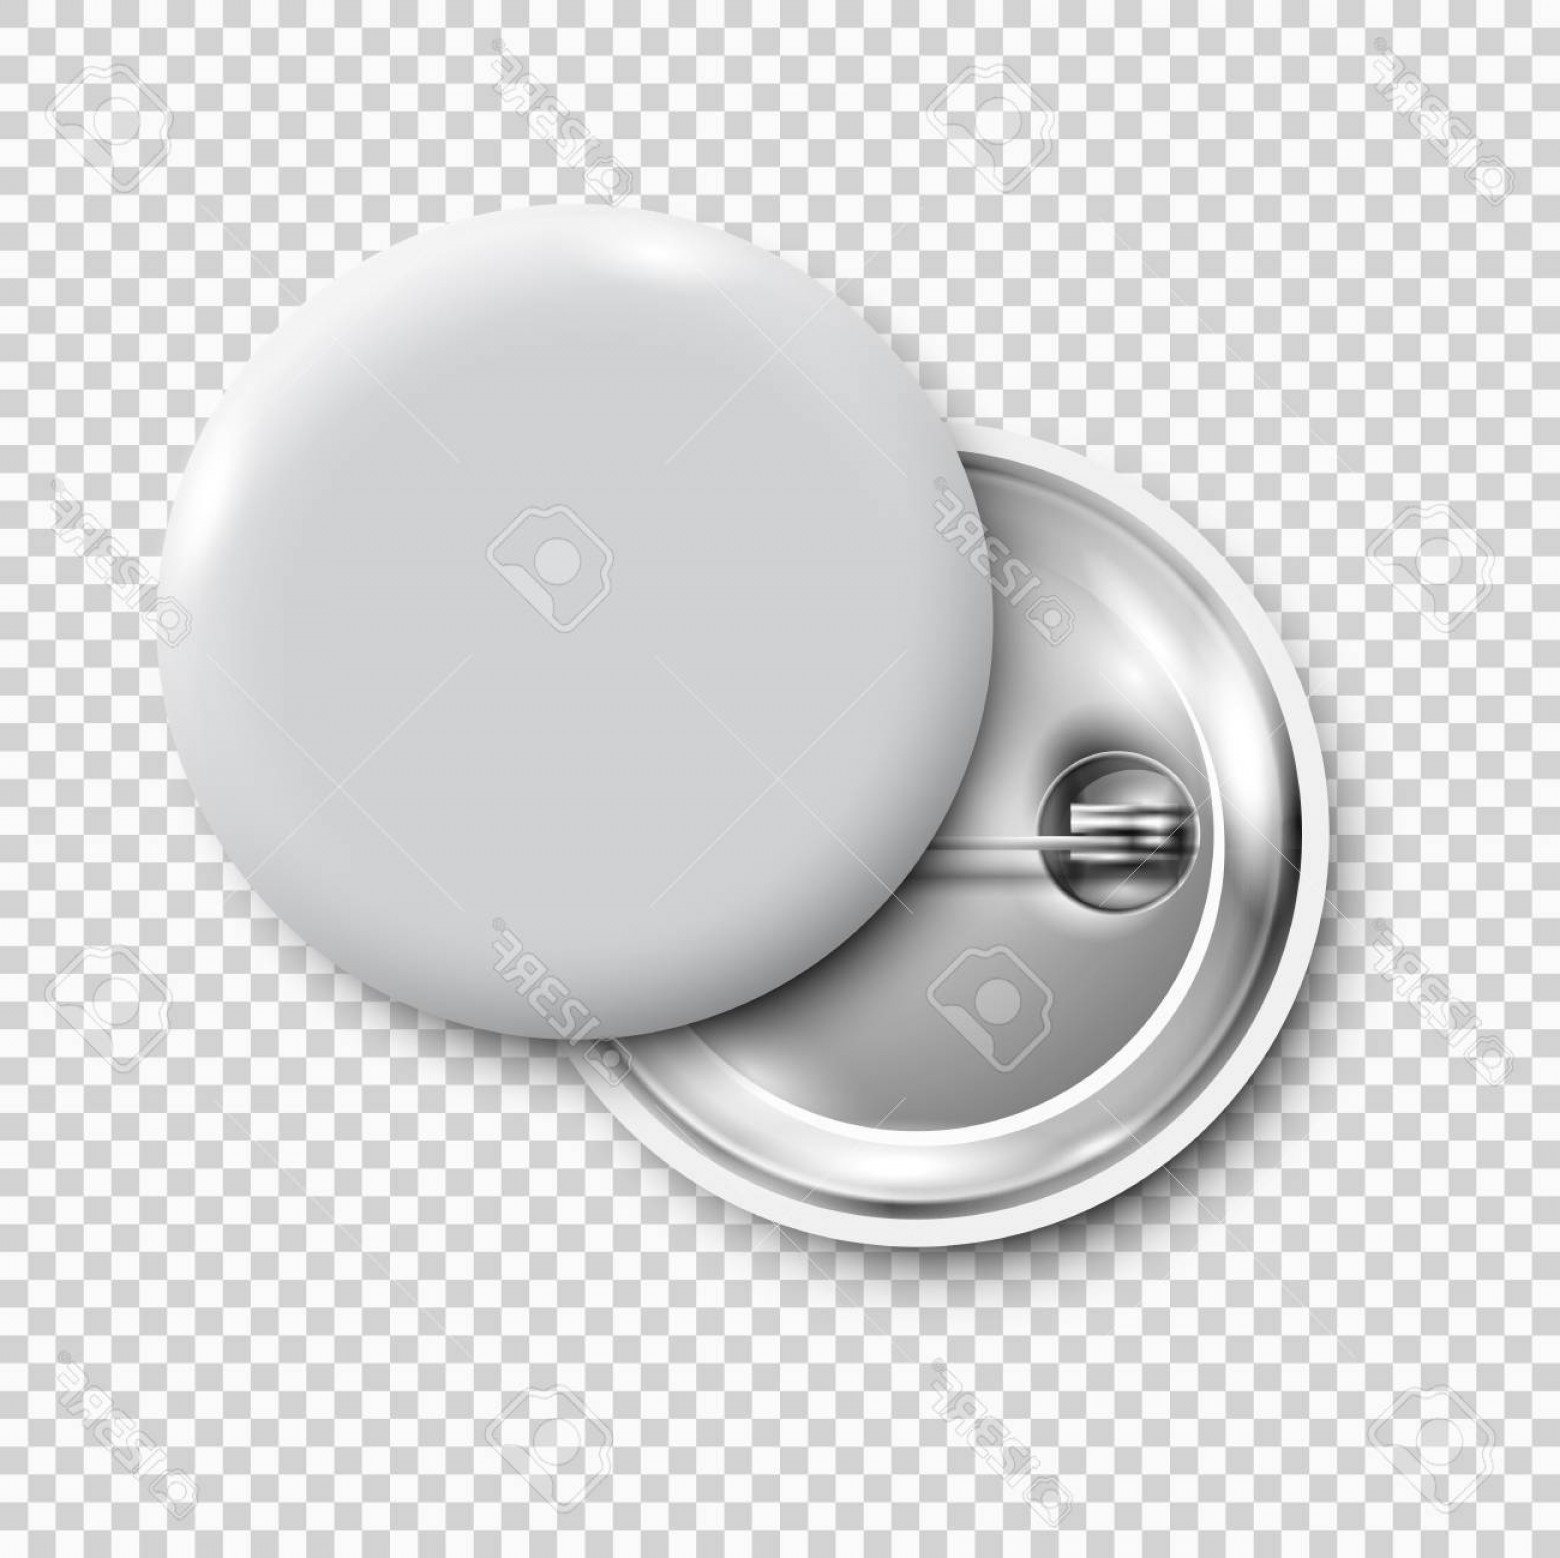 Button pins clipart image black and white library Photostock Vector White D Blank Badge Round Button Pin Button ... image black and white library